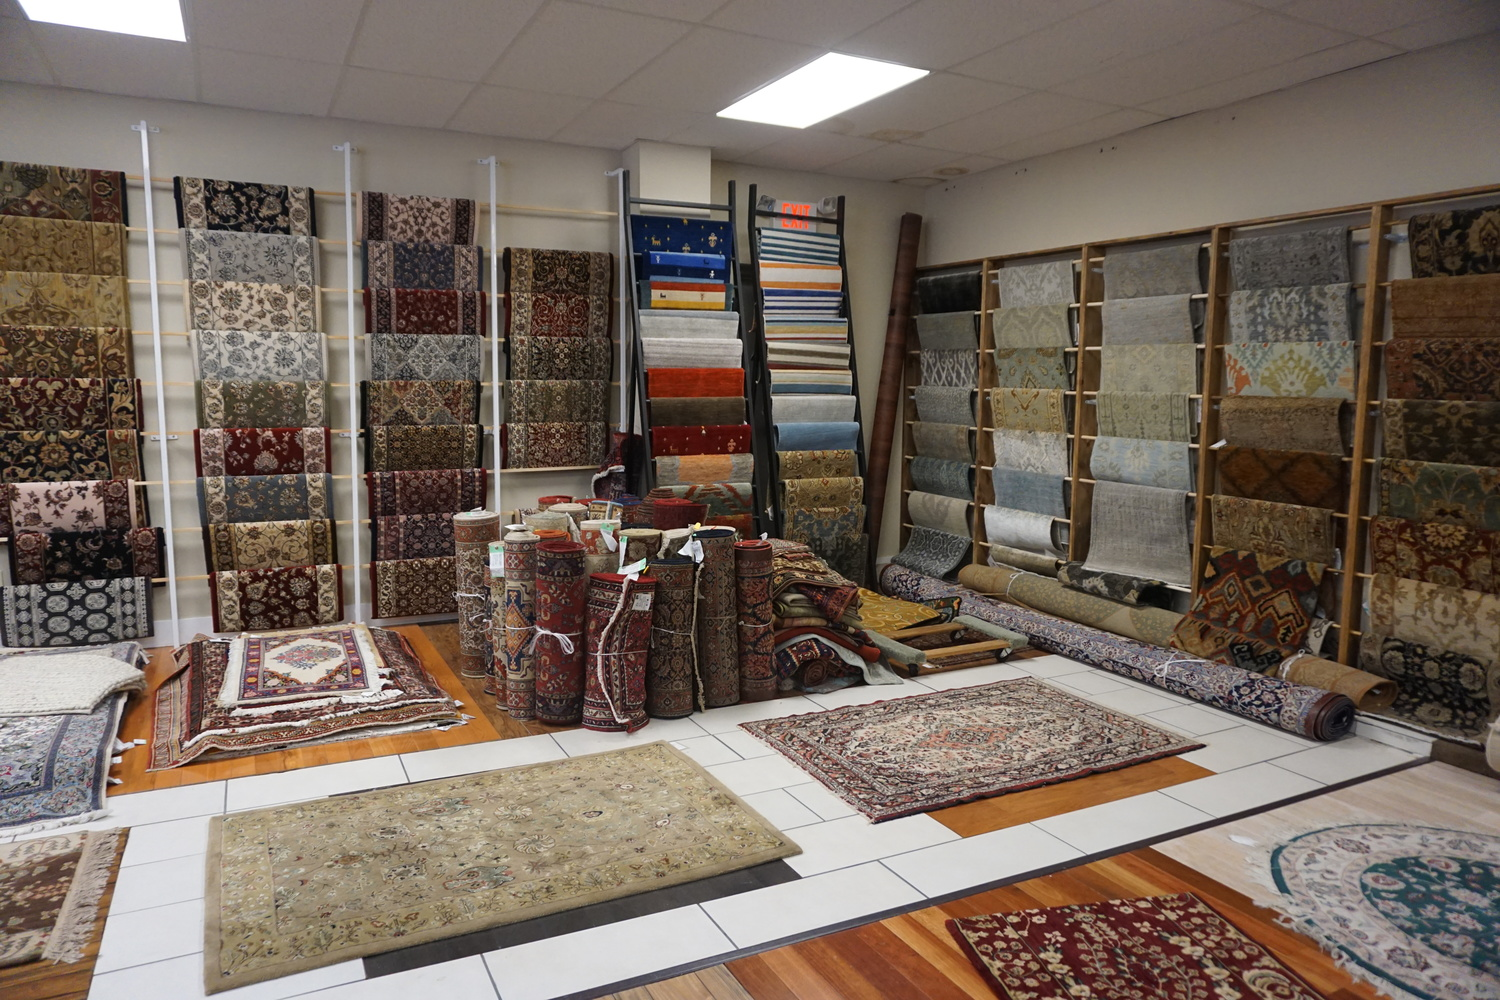 Your #1 Flooring Destination - We strive to be a one-stop shop for our customers. Offering best in business customer service and a selection of flooring and orientals that's unmatched by our competitors.